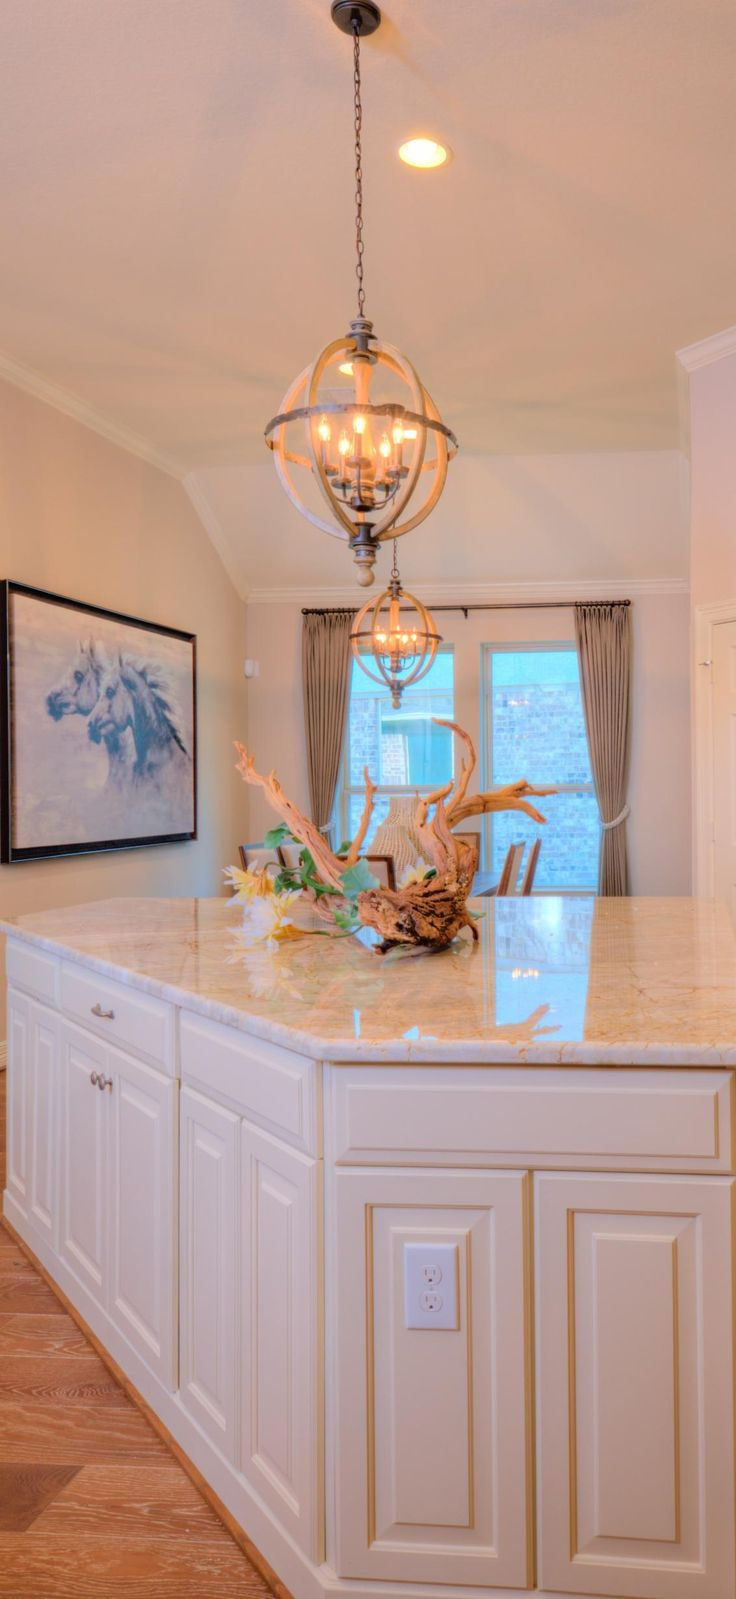 16 Best Avalon At Riverstone Chateau Series Images On Pinterest Sugar Land School District